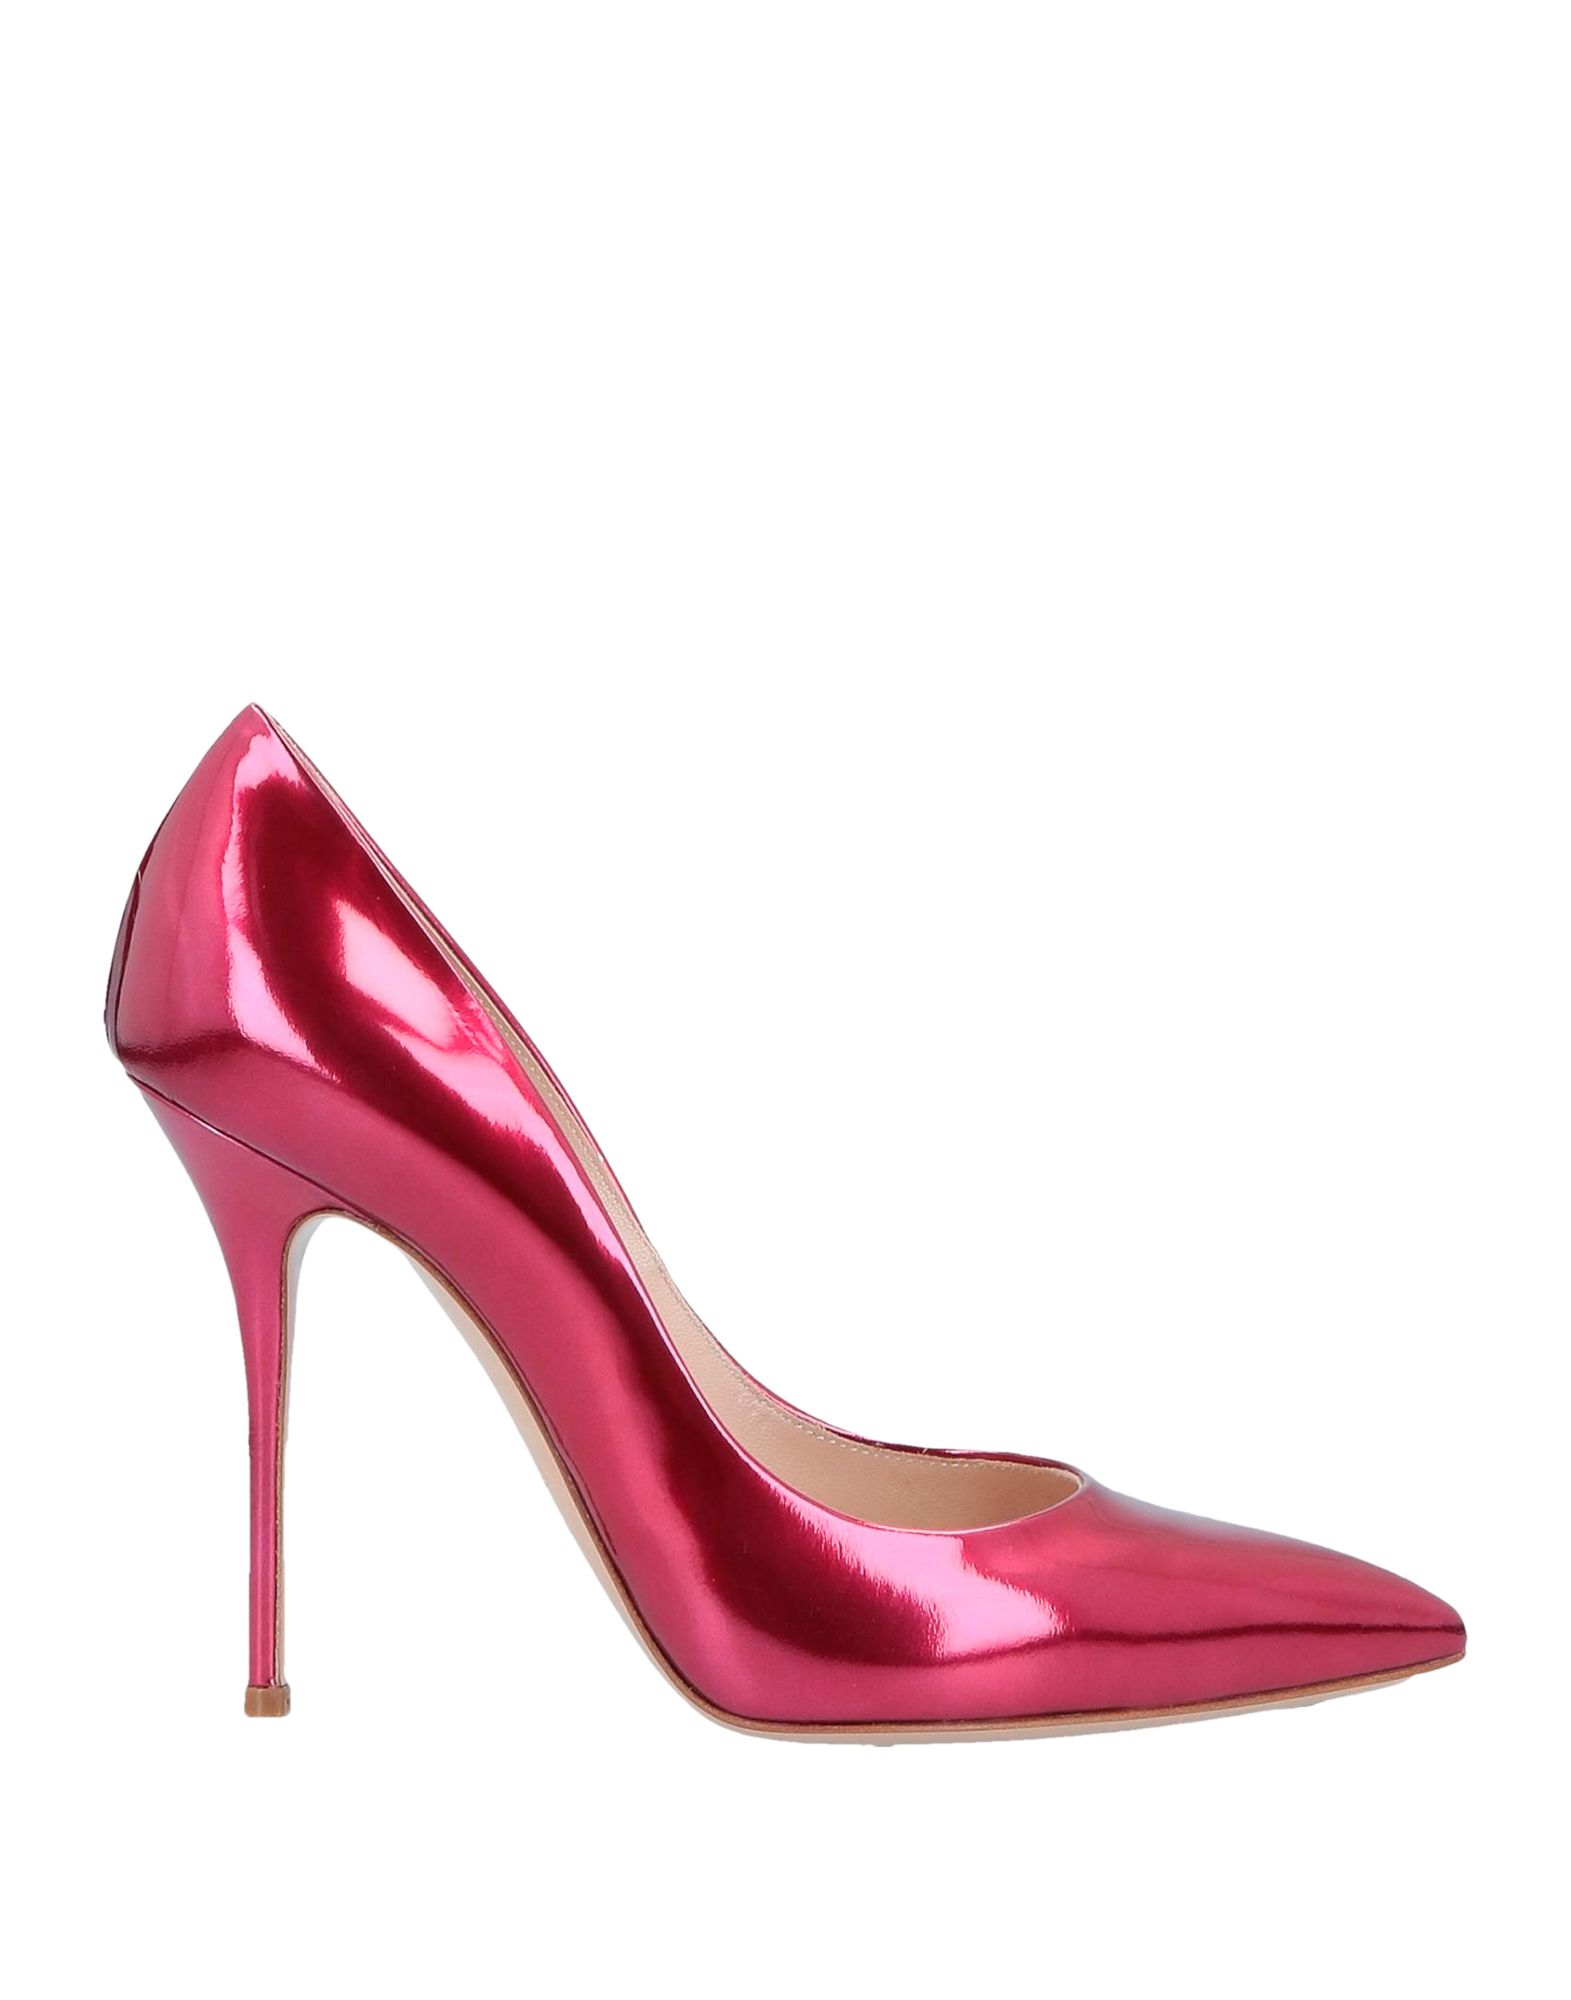 d2d1418415e5 Casadei Women Spring-Summer and Fall-Winter Collections - Shop online at  YOOX